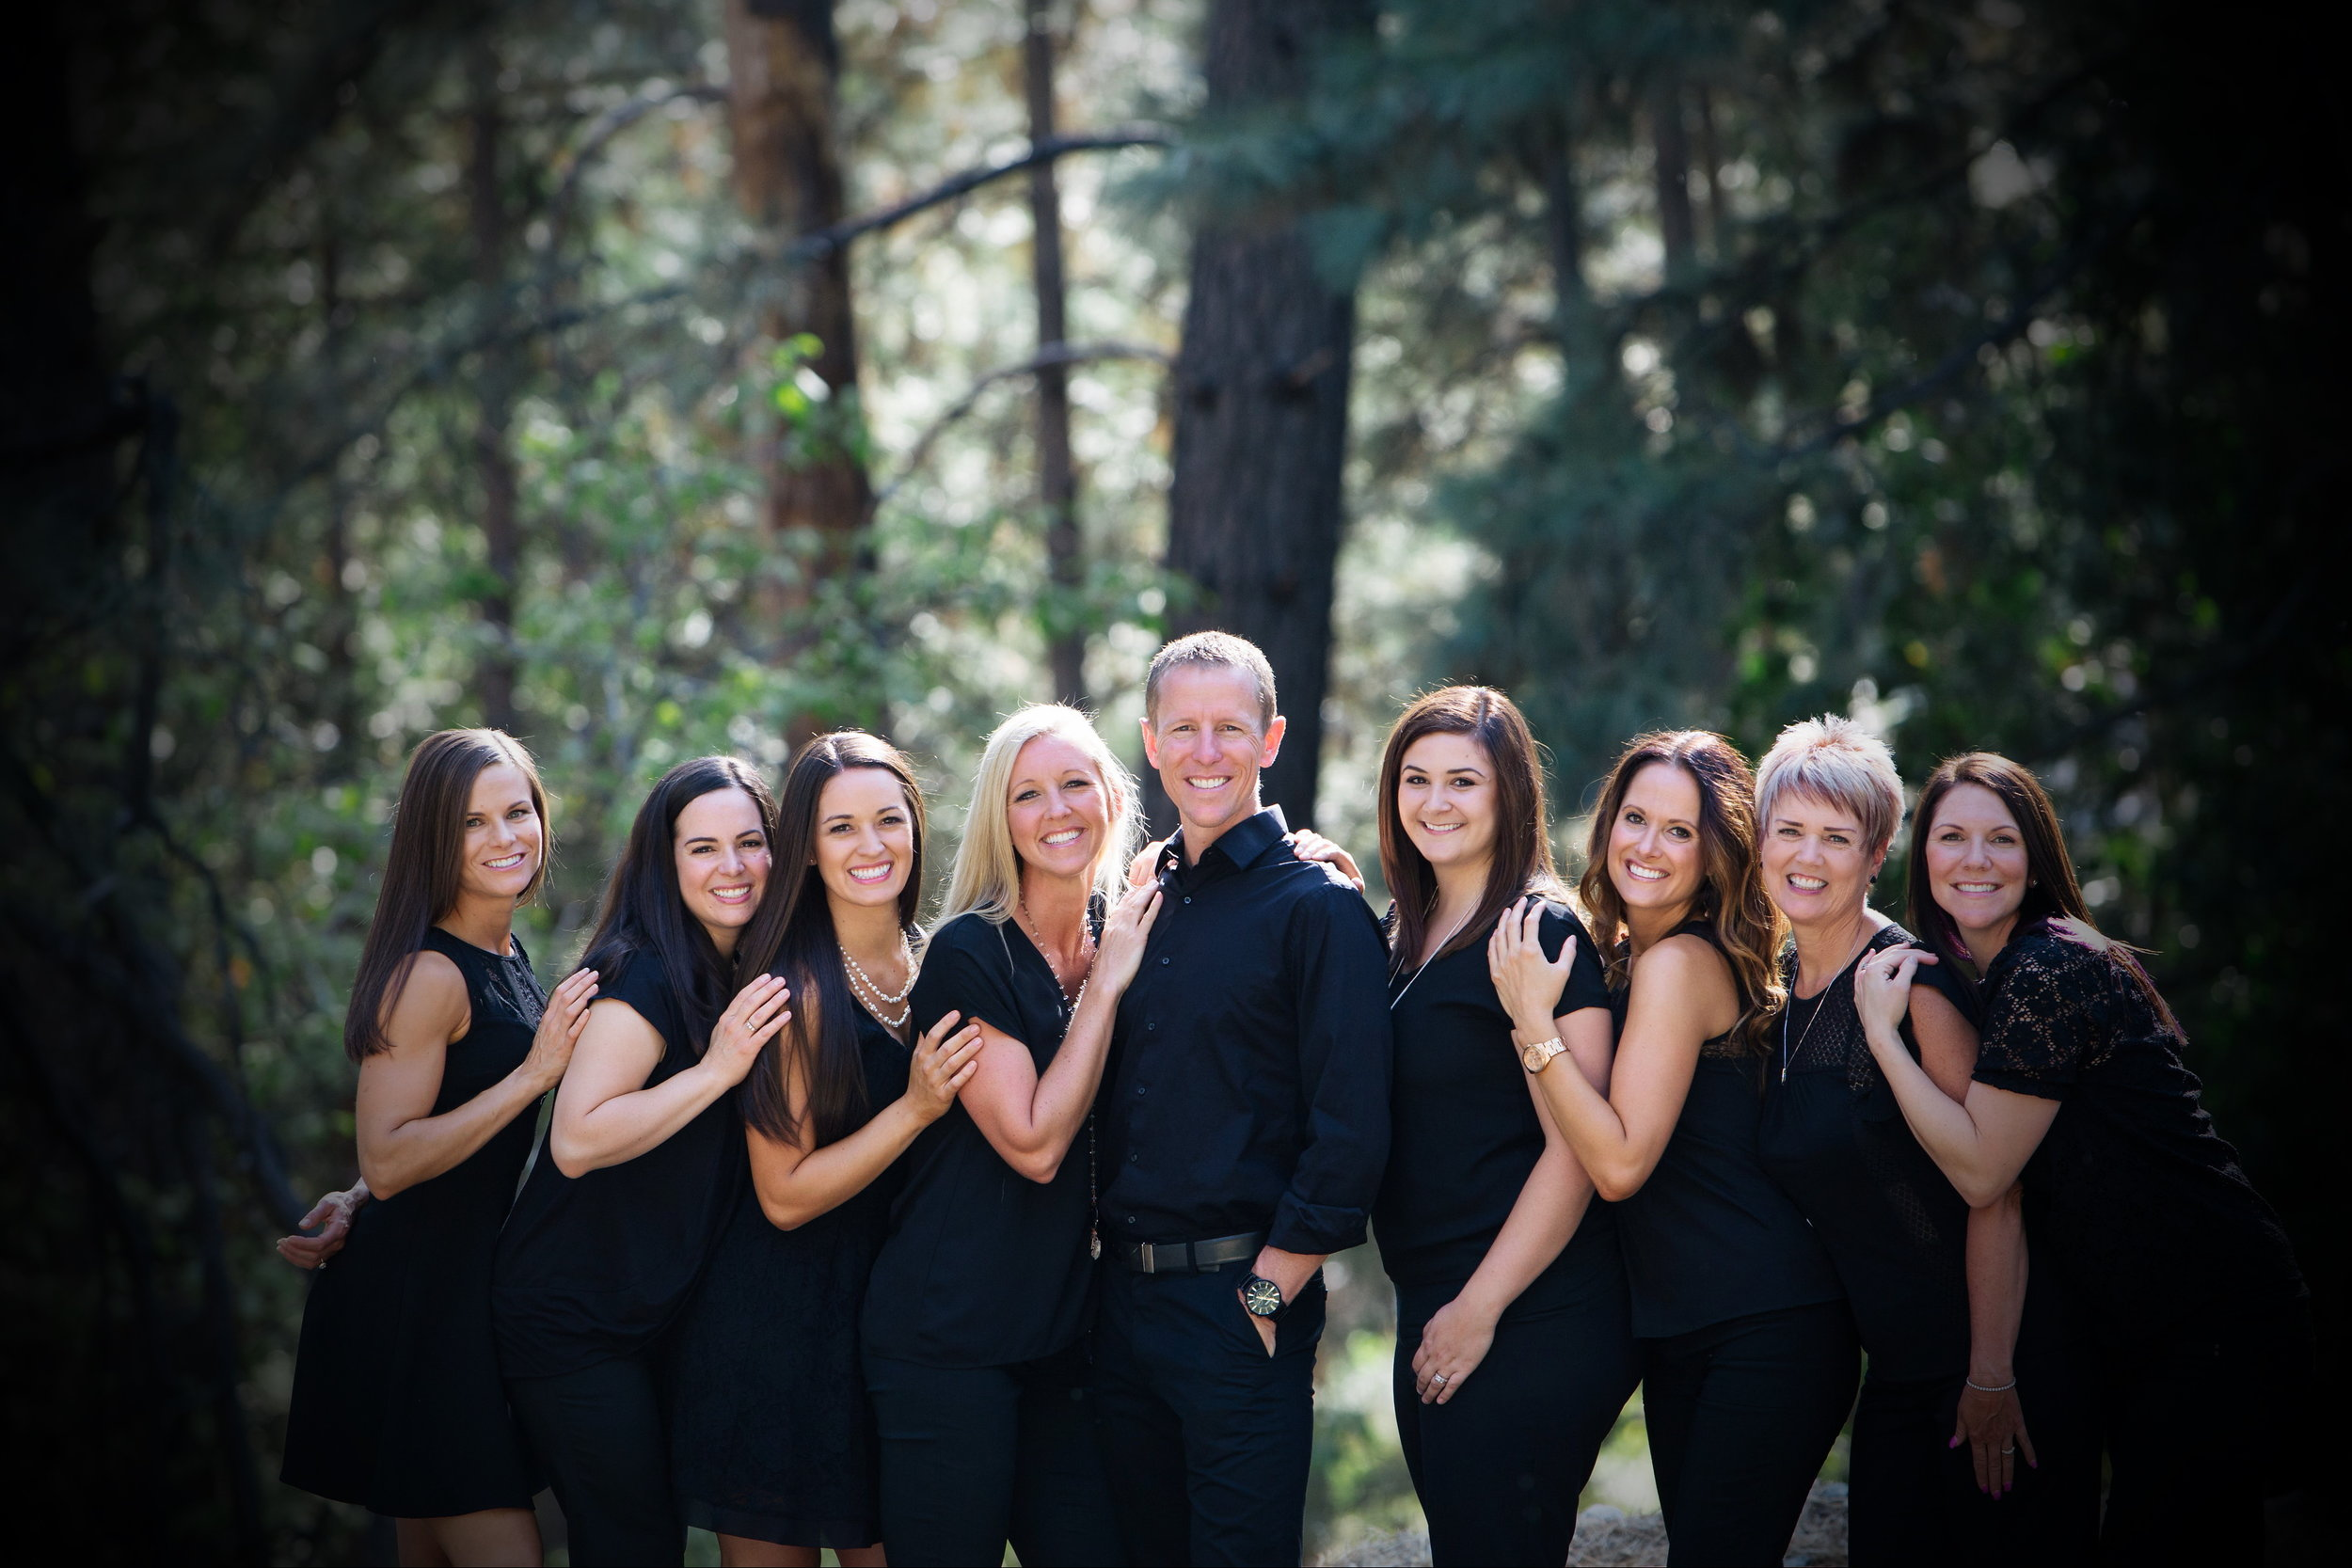 Meet the team at The Dental Wellness Center of Grass Valley.